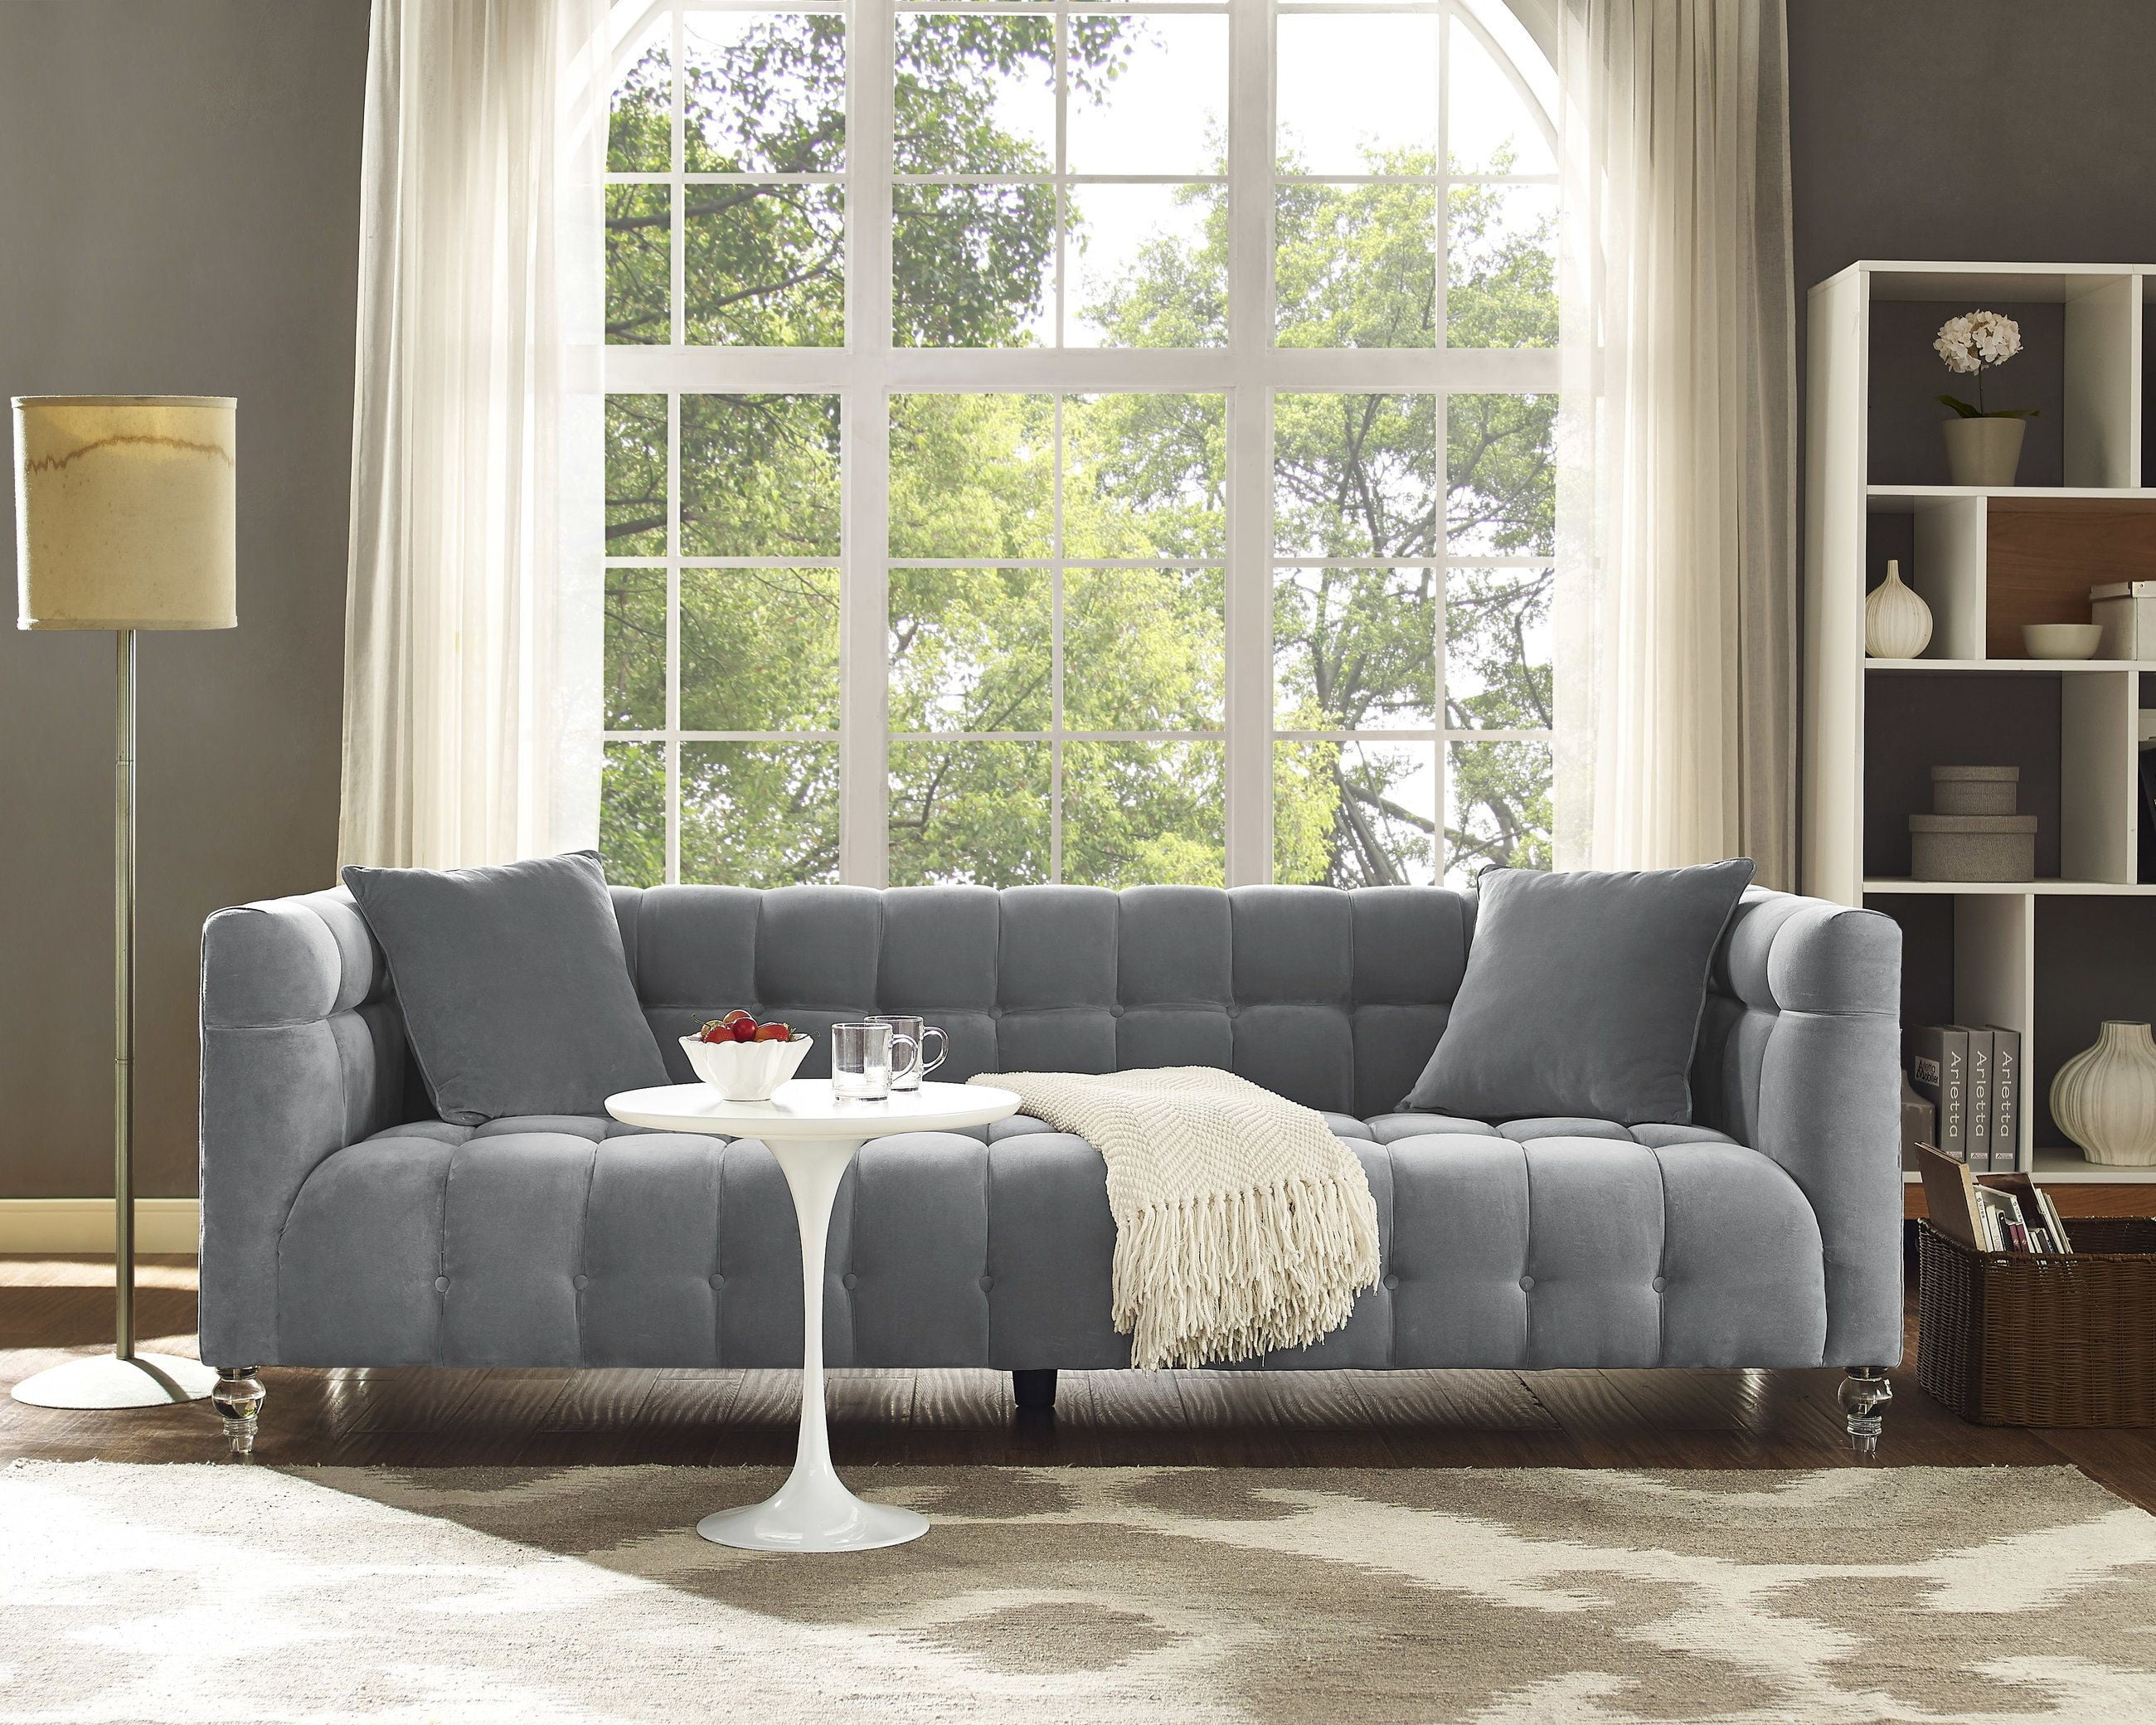 chose furniture img blue velvet sofa furniture blue velvet sofa blue velvet sofa with nailhead. Black Bedroom Furniture Sets. Home Design Ideas